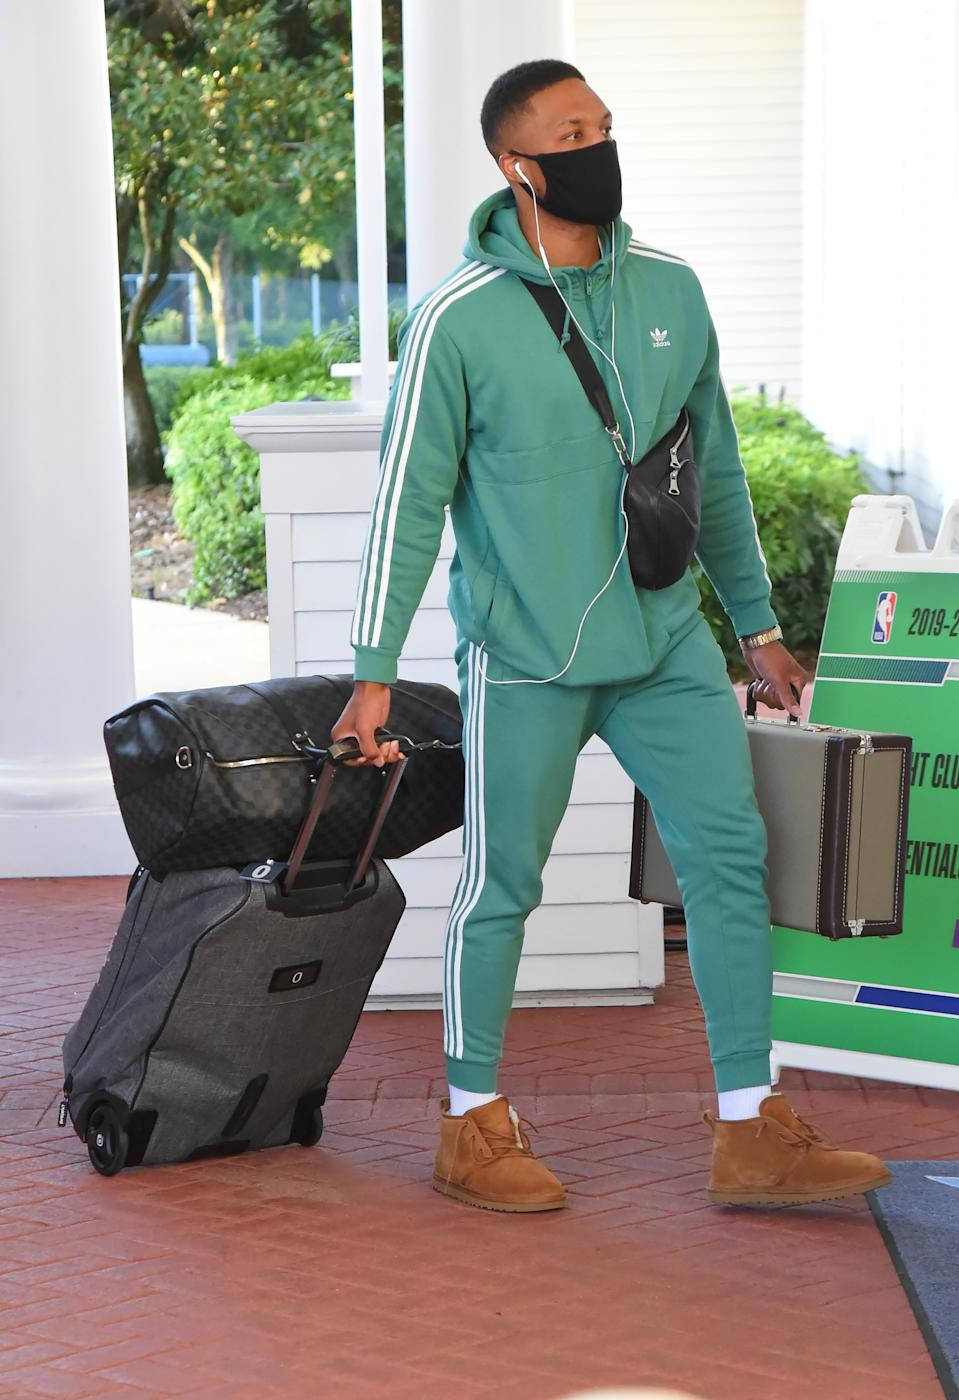 Damian Lillard #0 of the Portland Trail Blazers arrives at the hotel as part of the NBA Restart 2020 on July 9, 2020 in Orlando, Florida. (Photo by Bill Baptist/NBAE via Getty Images)